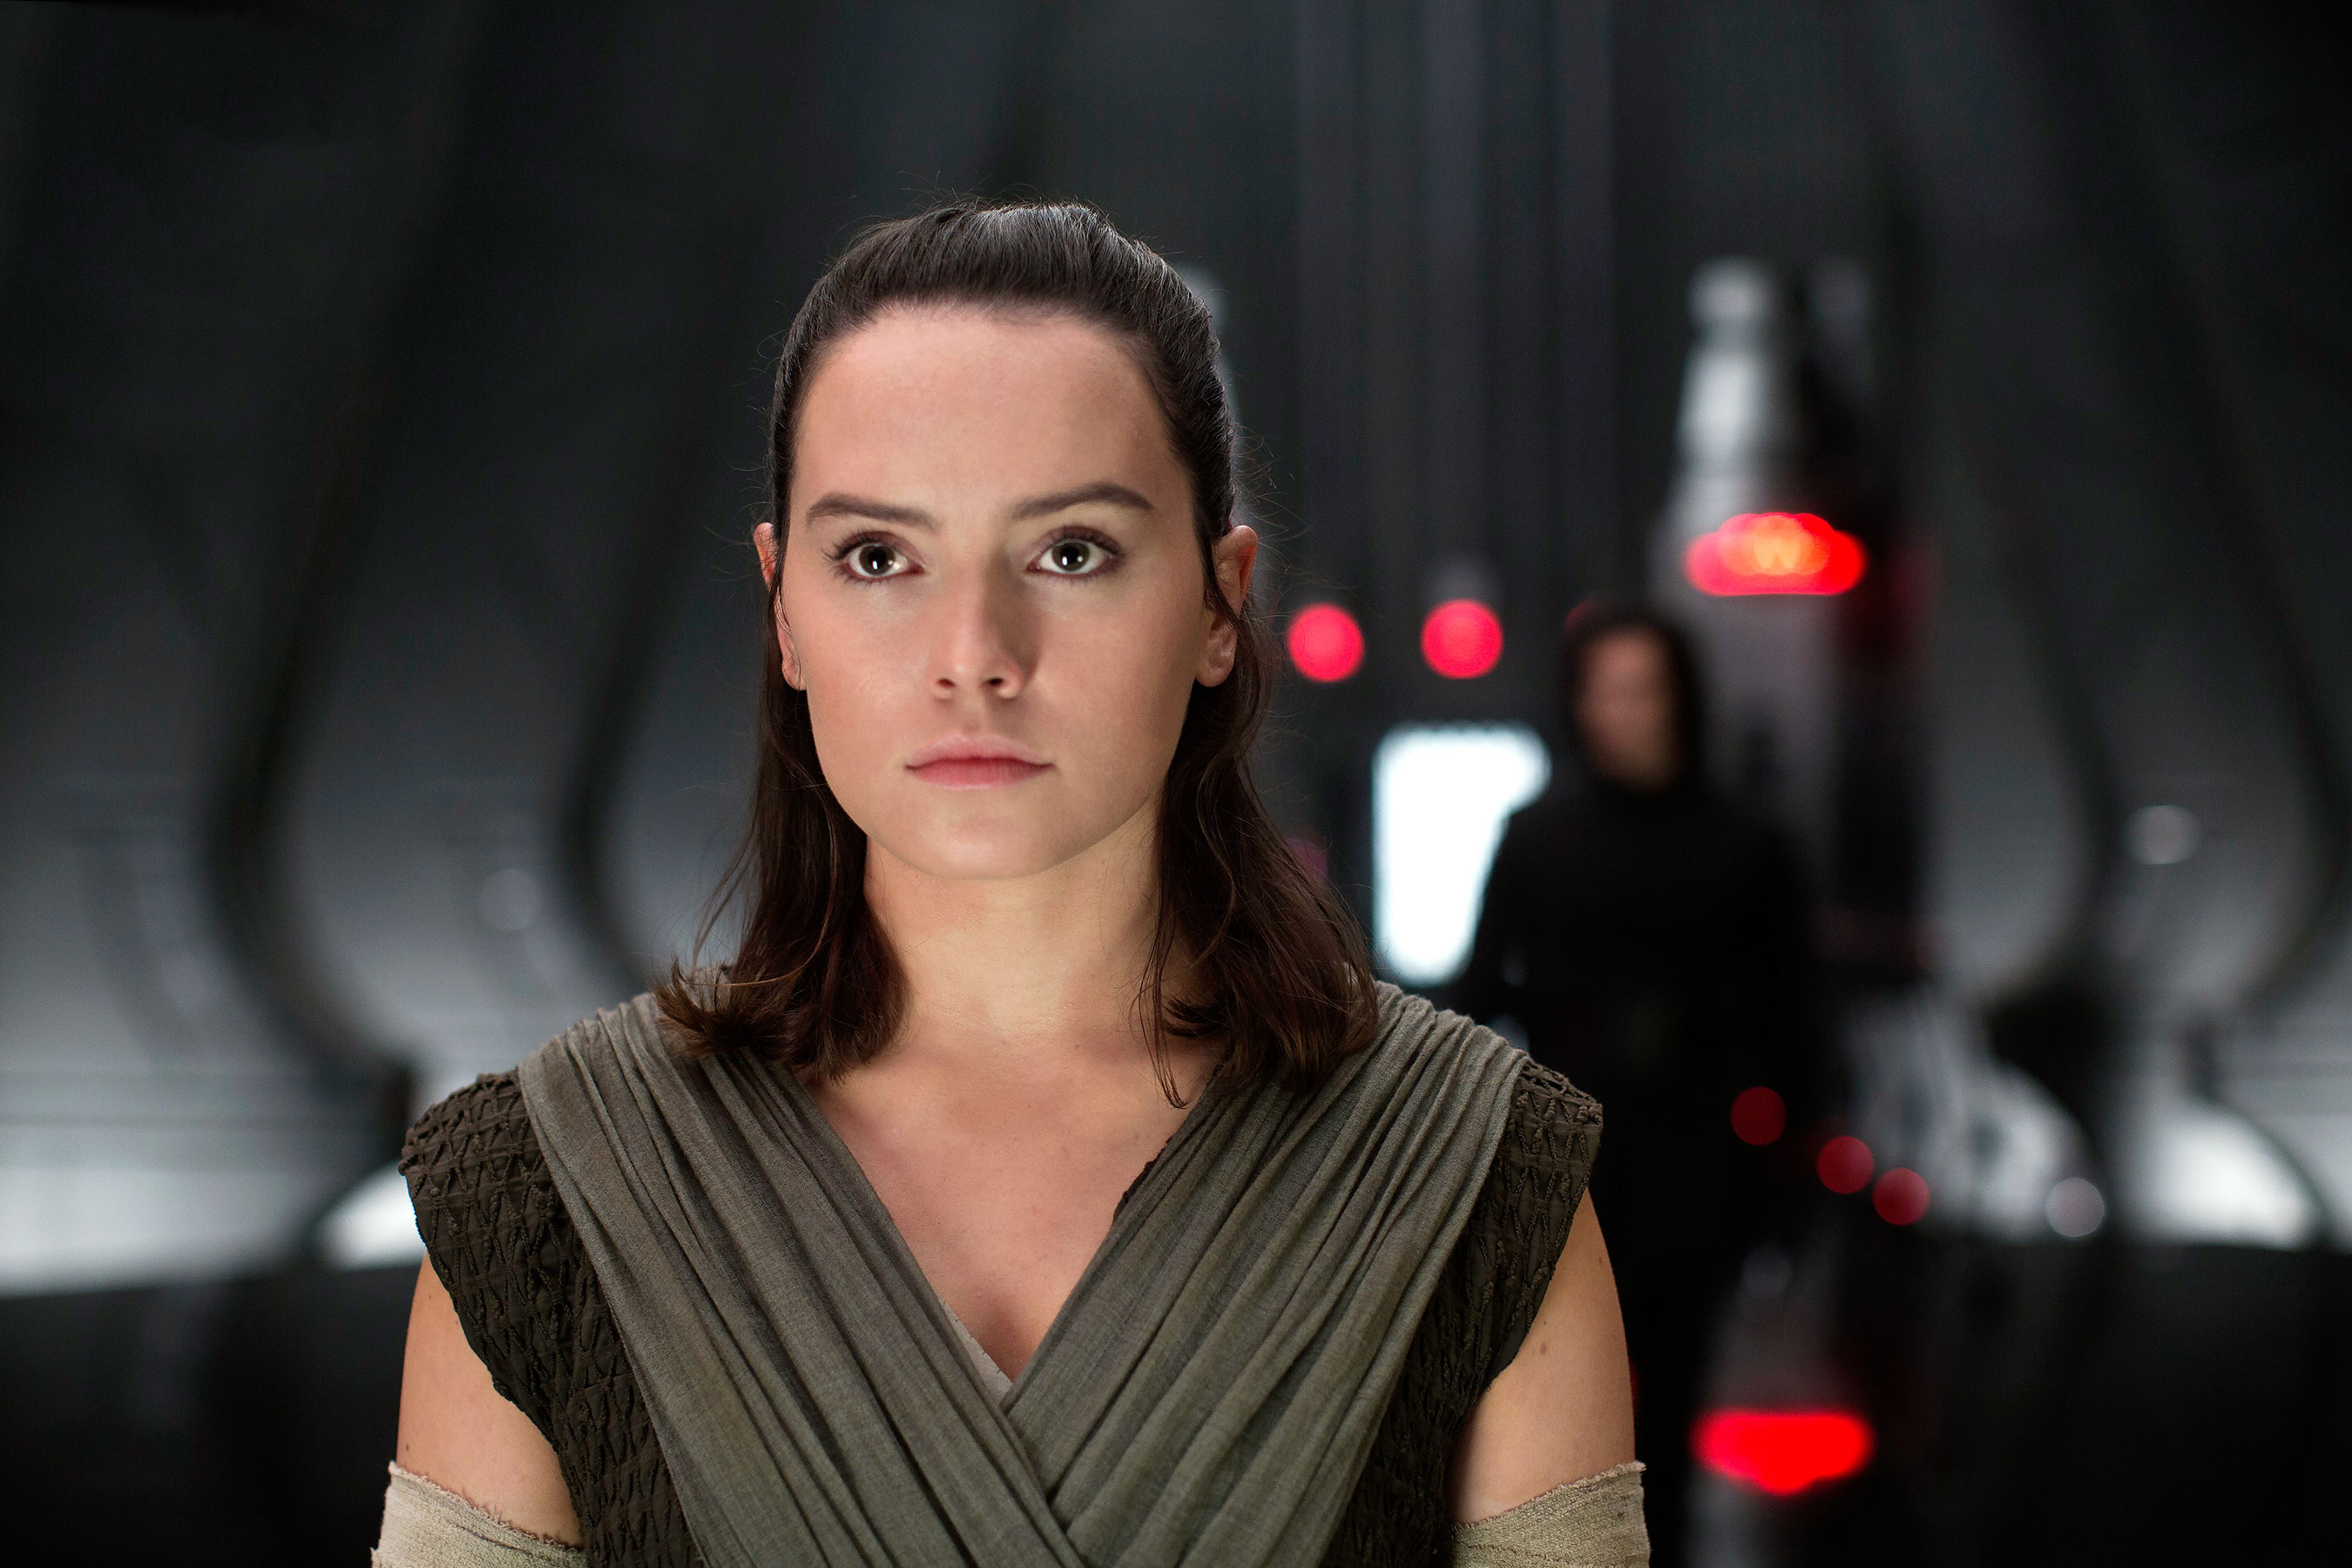 Rey In Star Wars The Last Jedi 2017 Hd Movies 4k Wallpapers Images Backgrounds Photos And Pictures